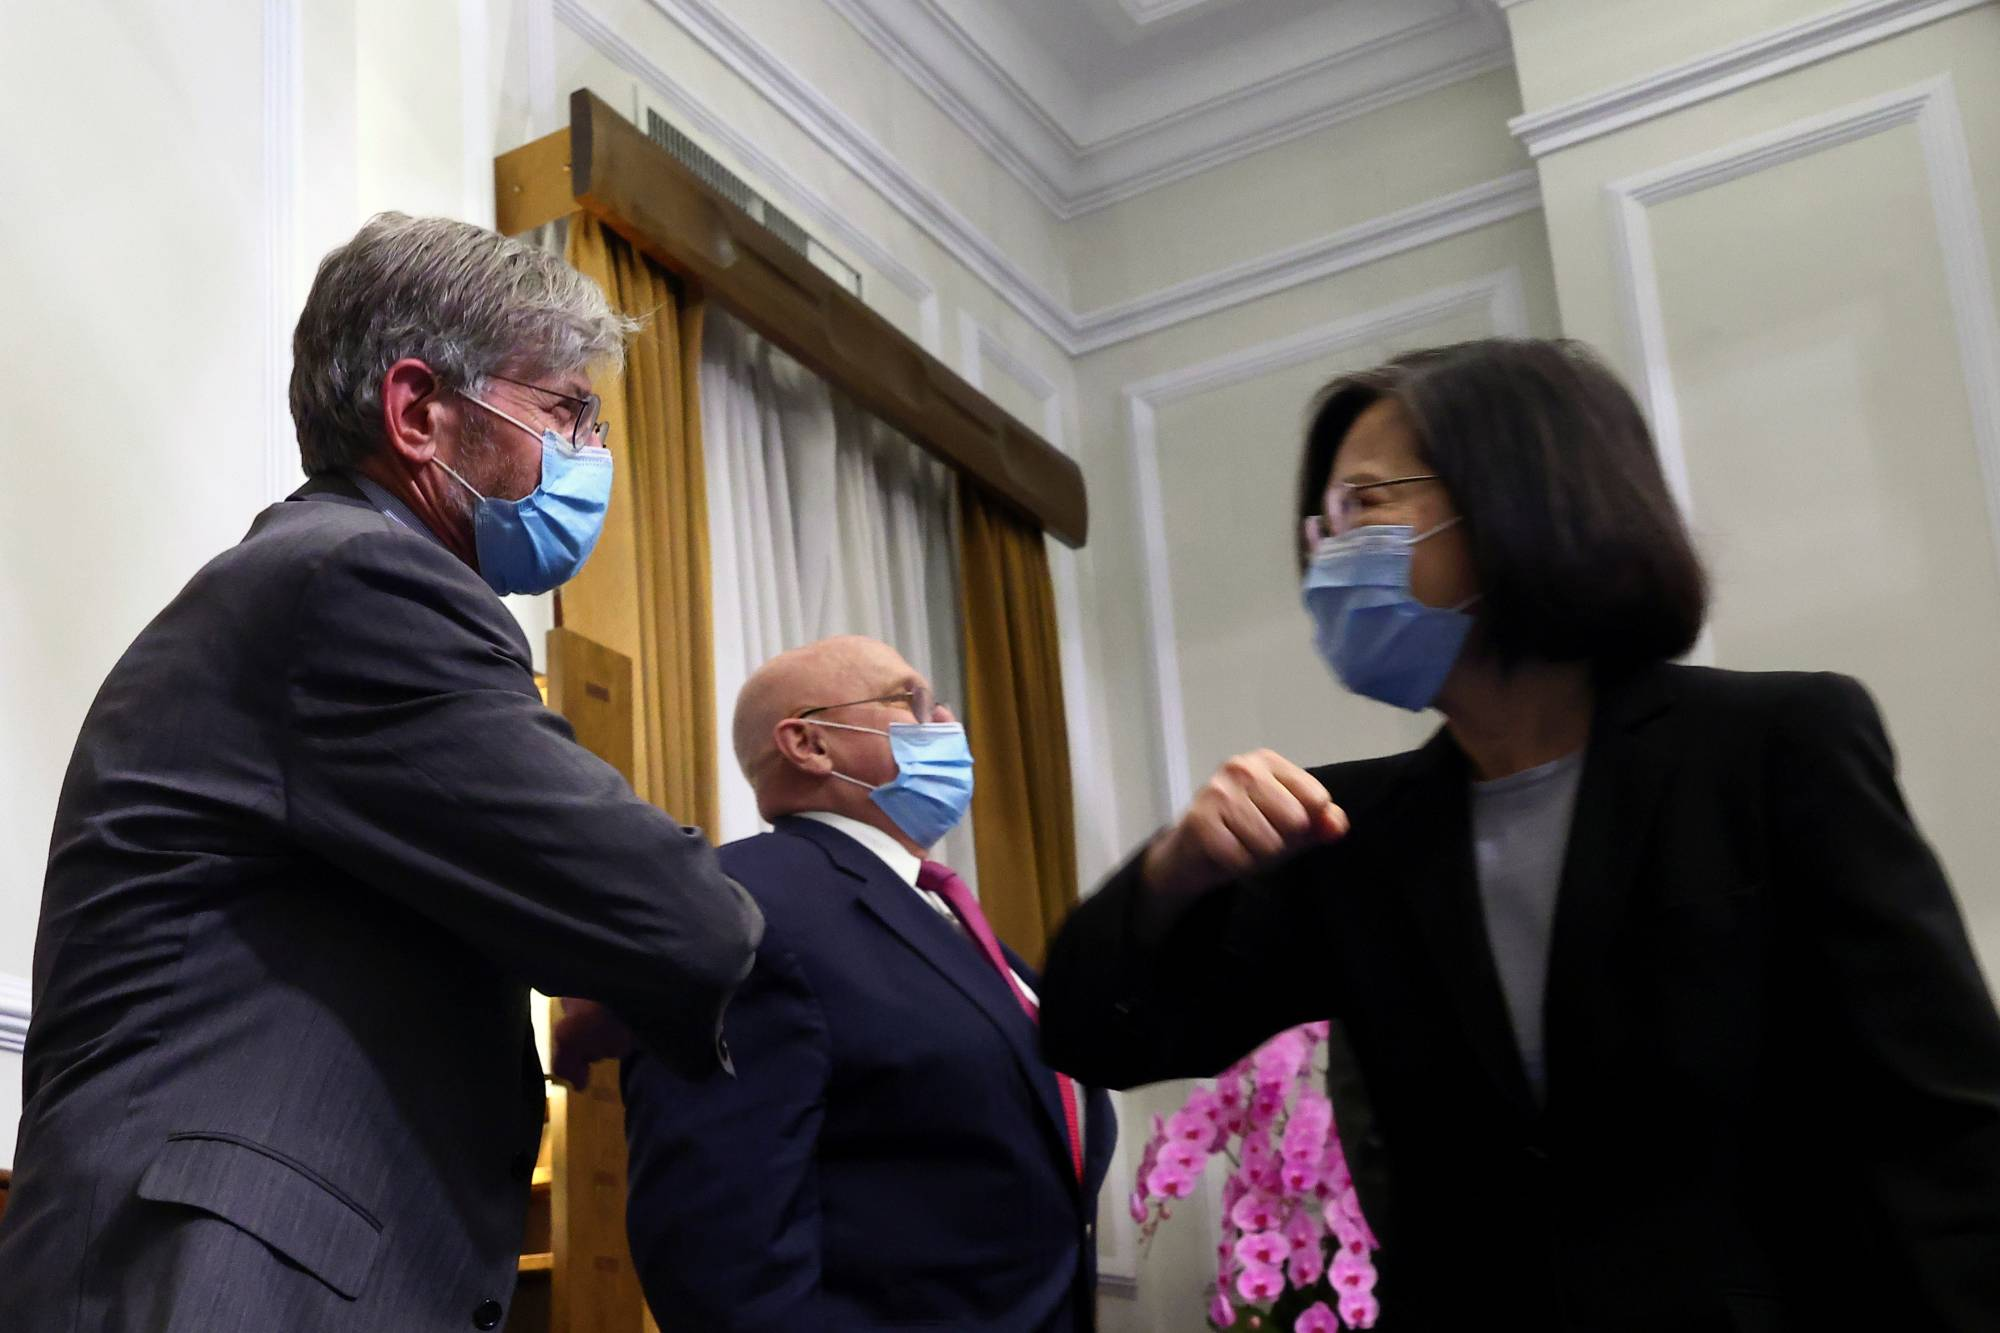 Taiwan President Tsai Ing-wen greets former U.S. Deputy Secretary of State Jim Steinberg at a meeting at the presidential office in Taipei on Thursday. | POOL / VIA REUTERS